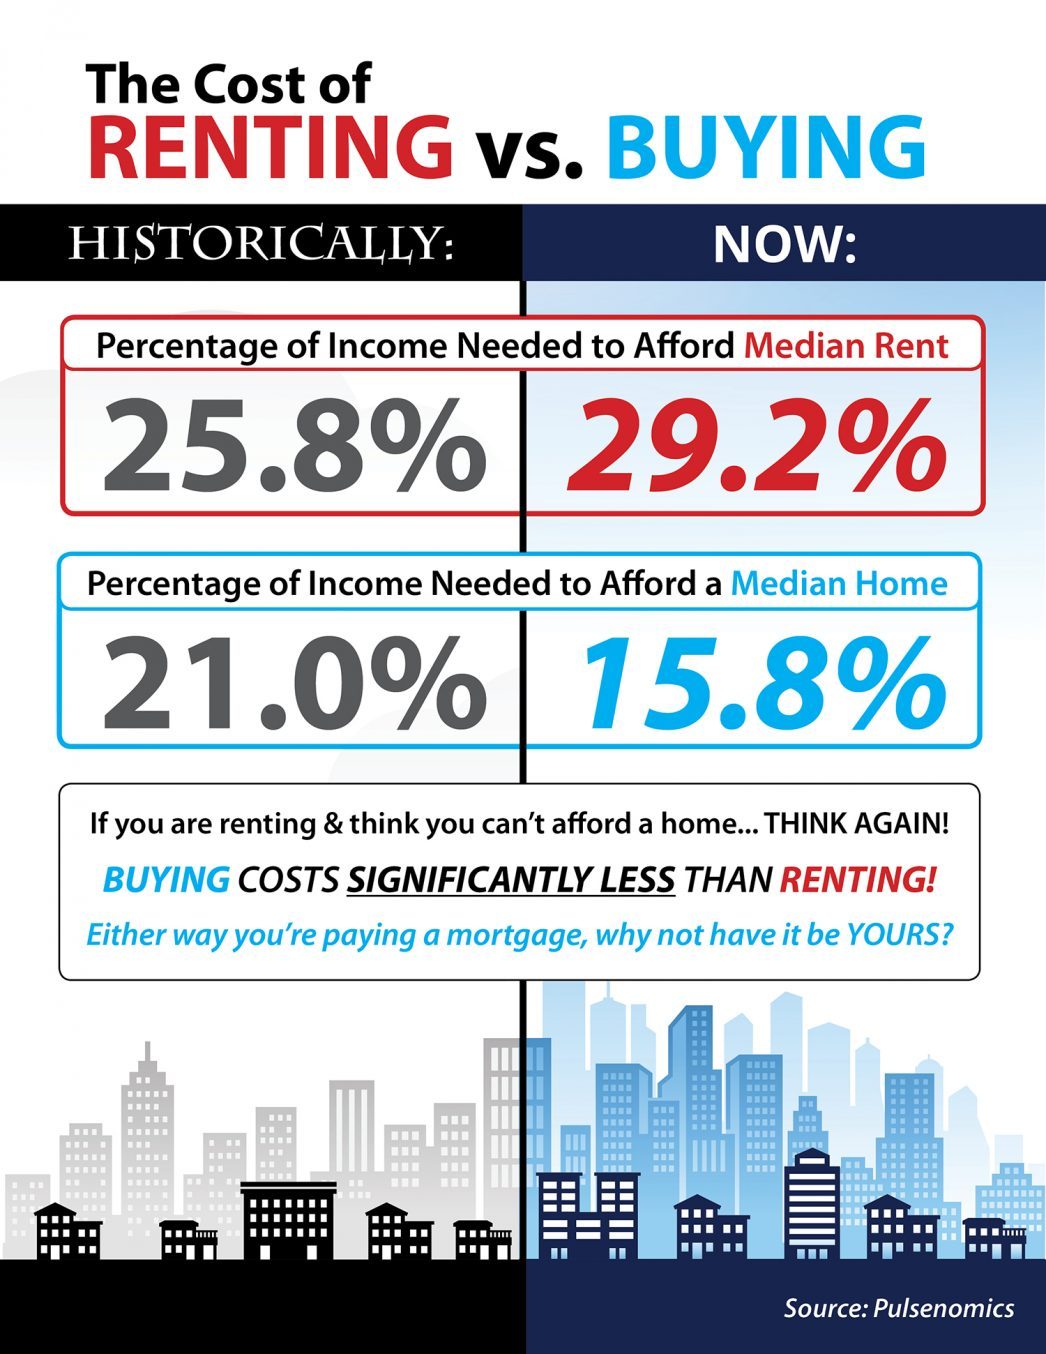 The Cost of Renting vs Buying in Las Vegas